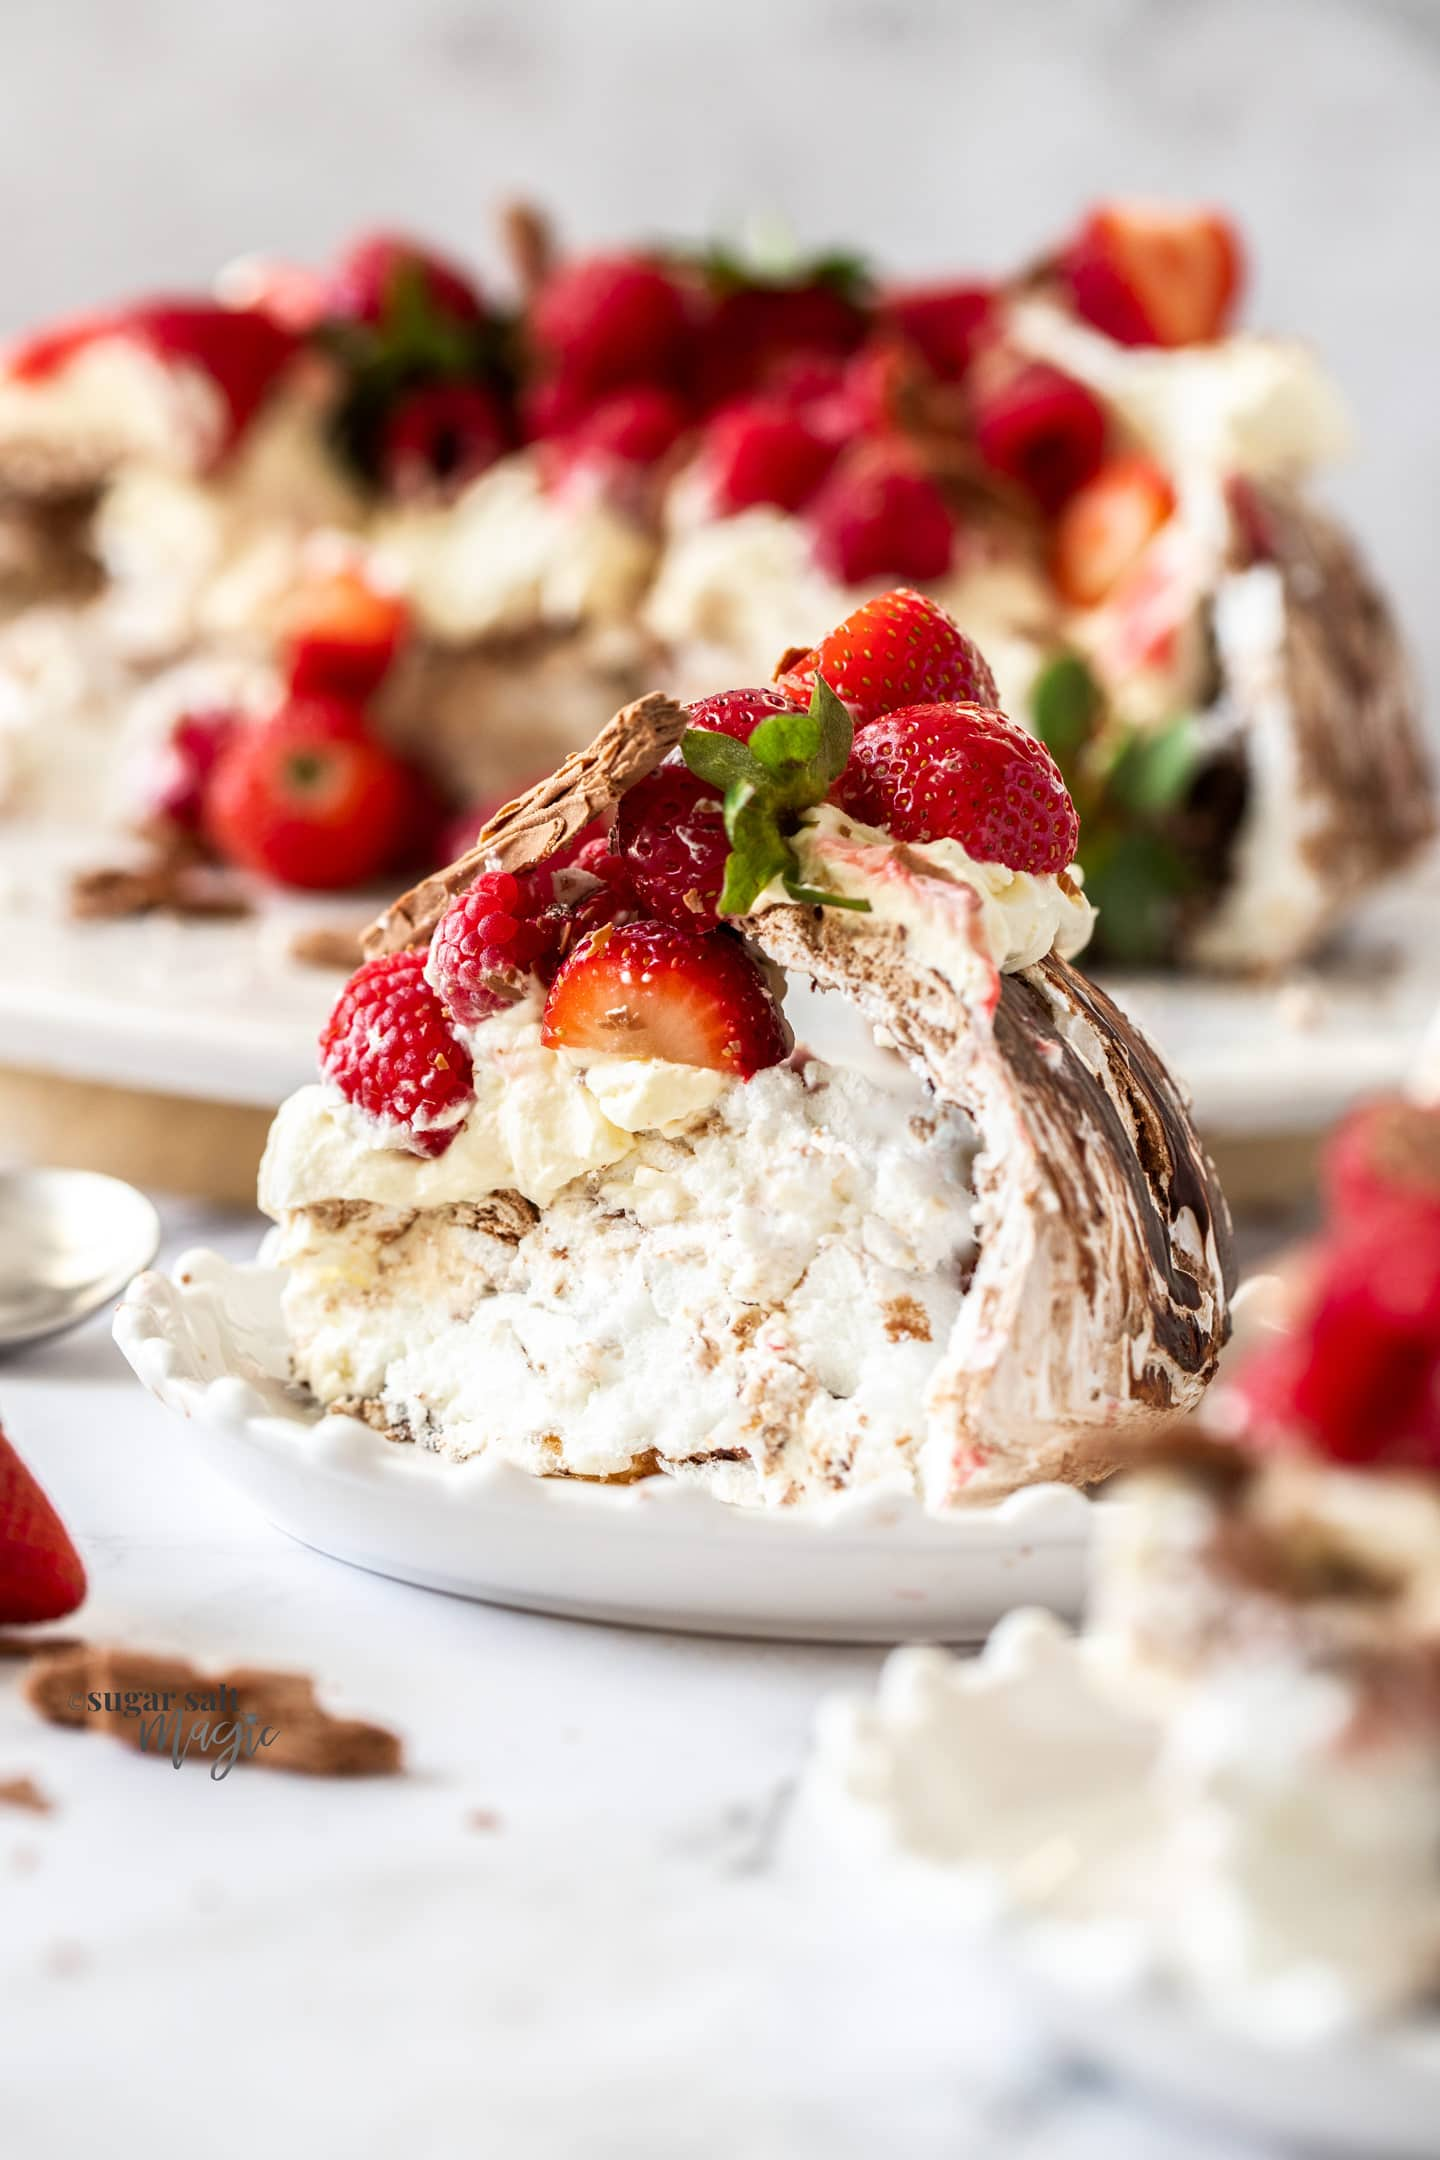 A slice of pavlova swirled with chocolate on a white plate